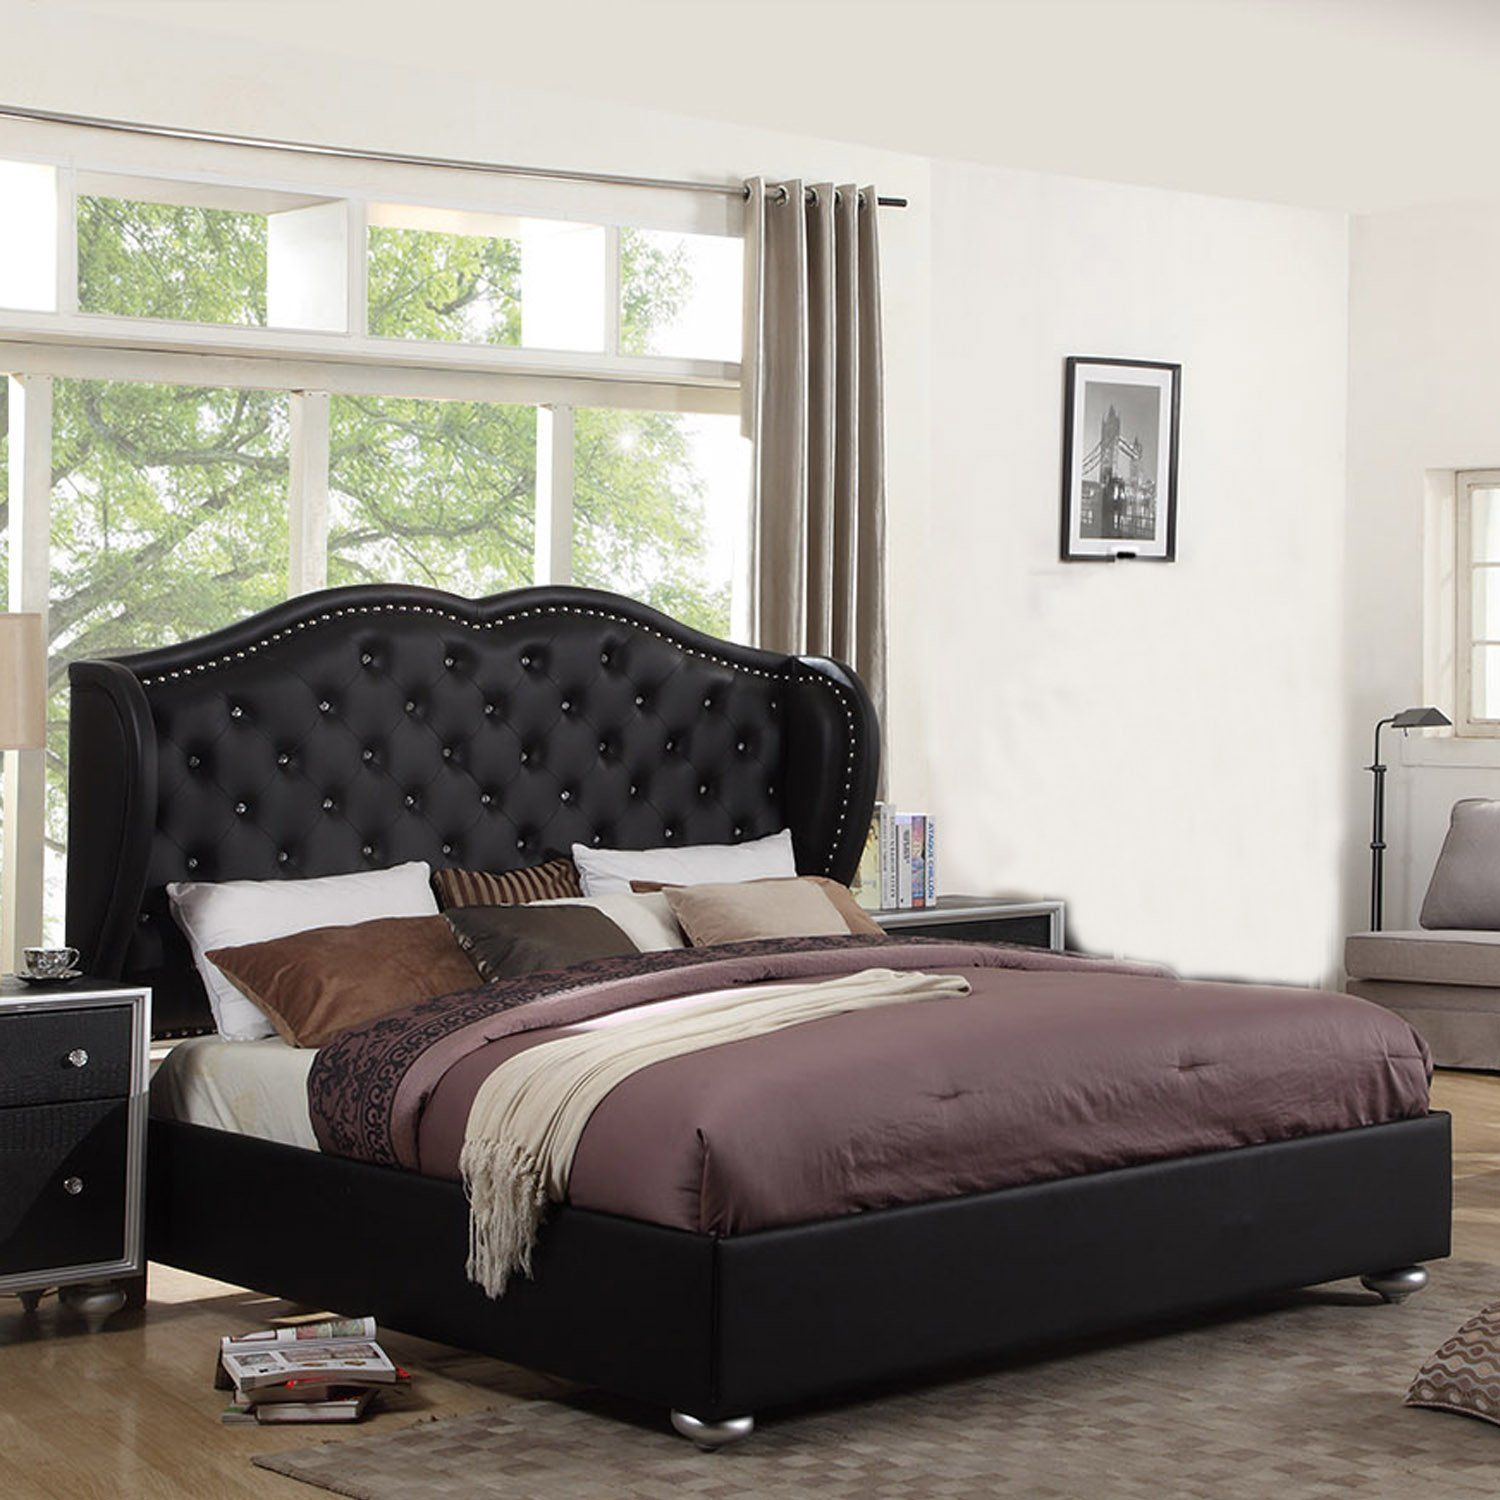 Ufe Courtney Black Platform Bed Diamond Tufting With